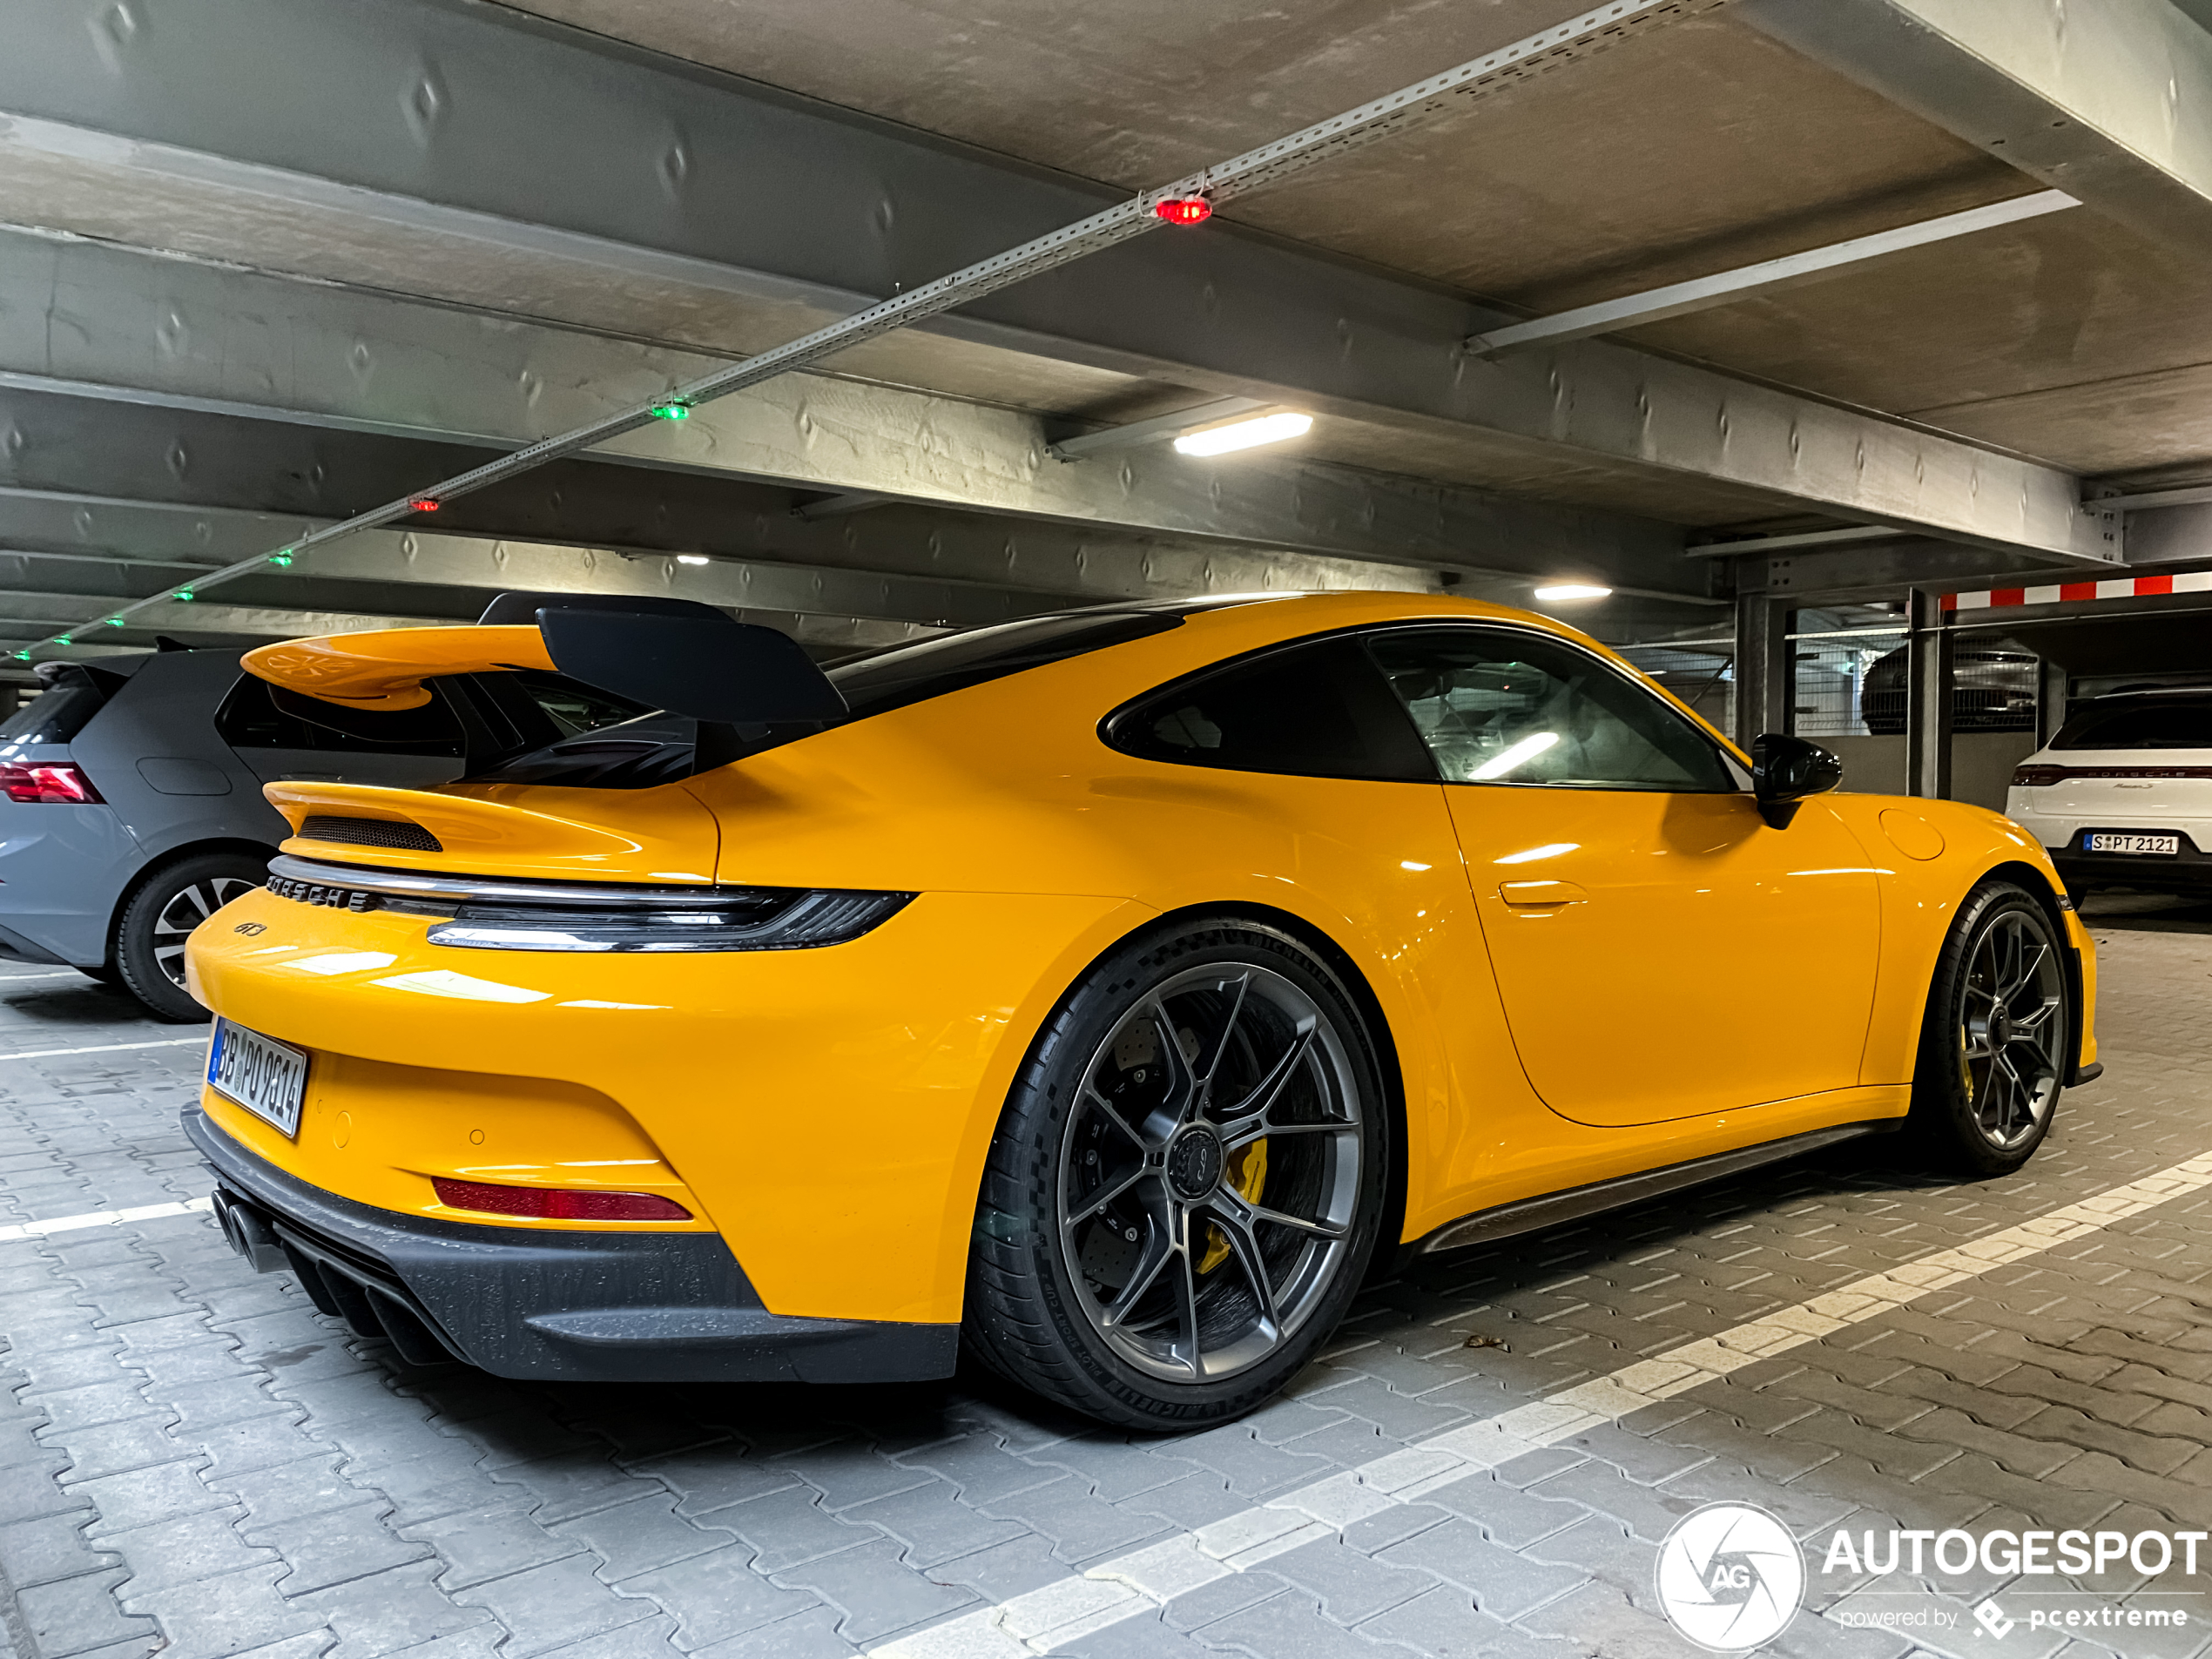 Primeur gespot: Porsche 992 GT3 in PTS Signal Yellow